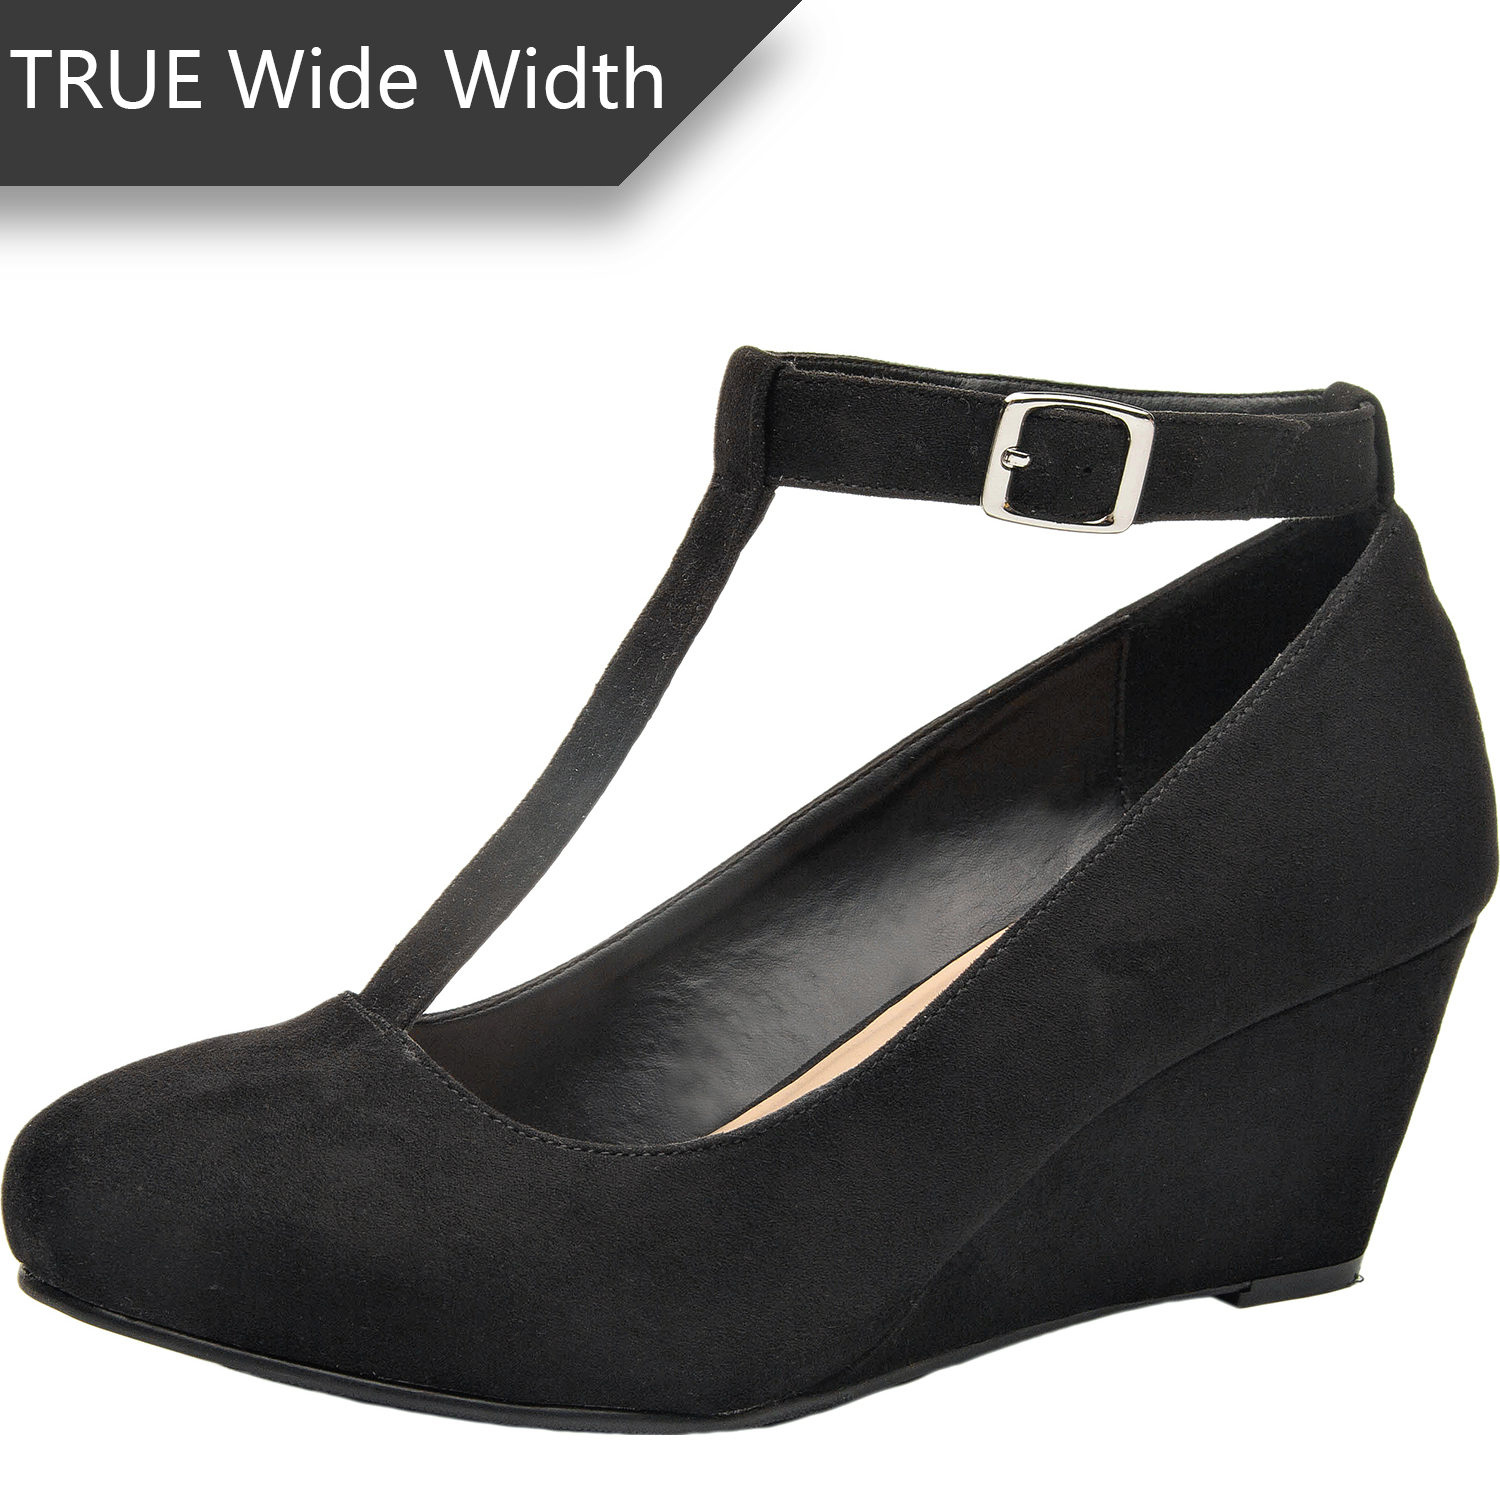 a3b7dc08d US  39.99 - Luoika Women s Wide Width Wedge Shoes - Mary Jane Heel Pump  with T-Strap. - www.luoika-us.com